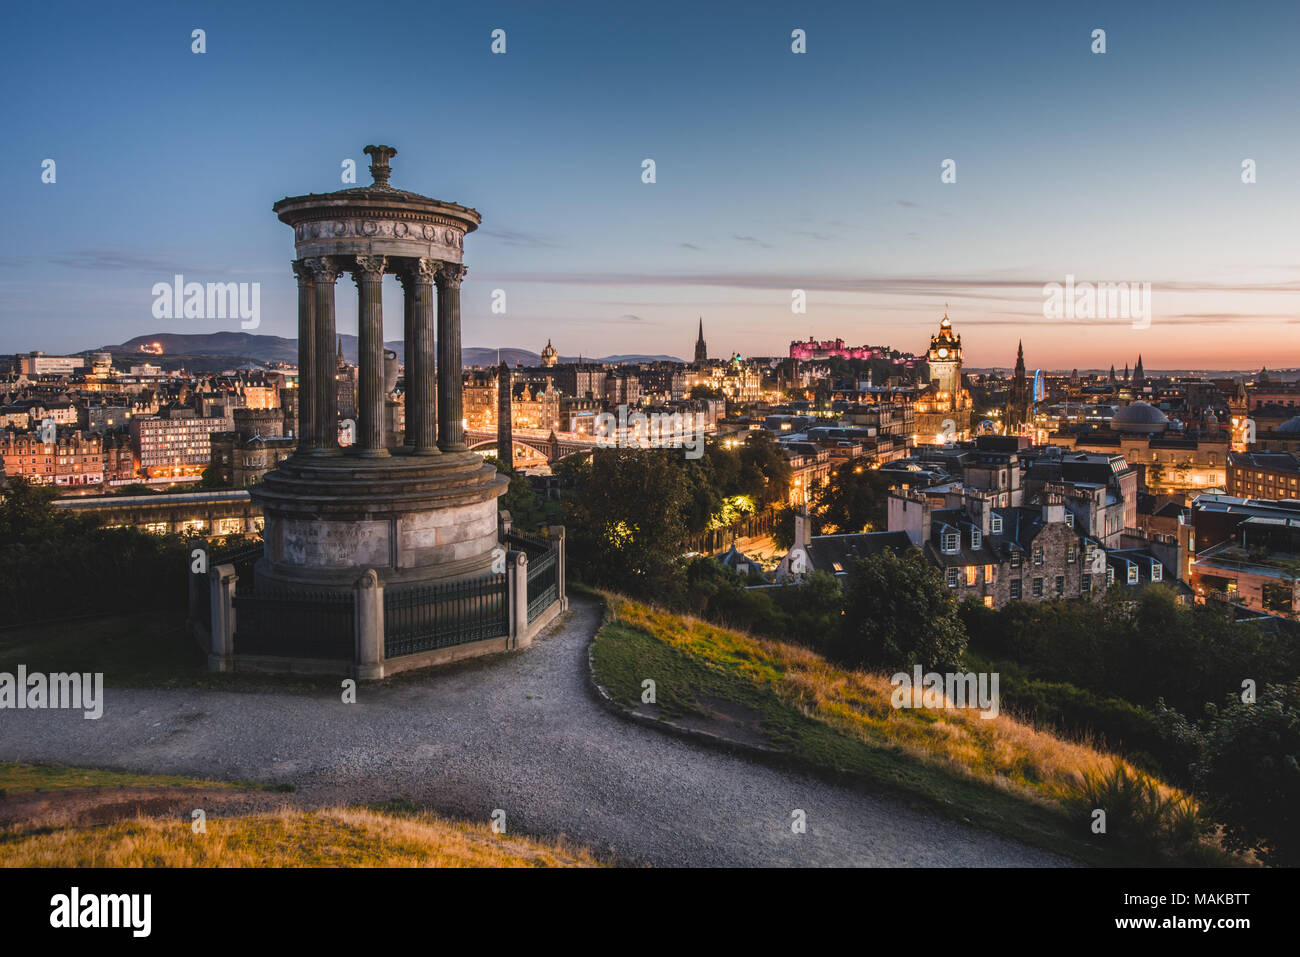 Pictures and landscapes from Scotland. Photo: Alessandro Bosio/Alamy - Stock Image